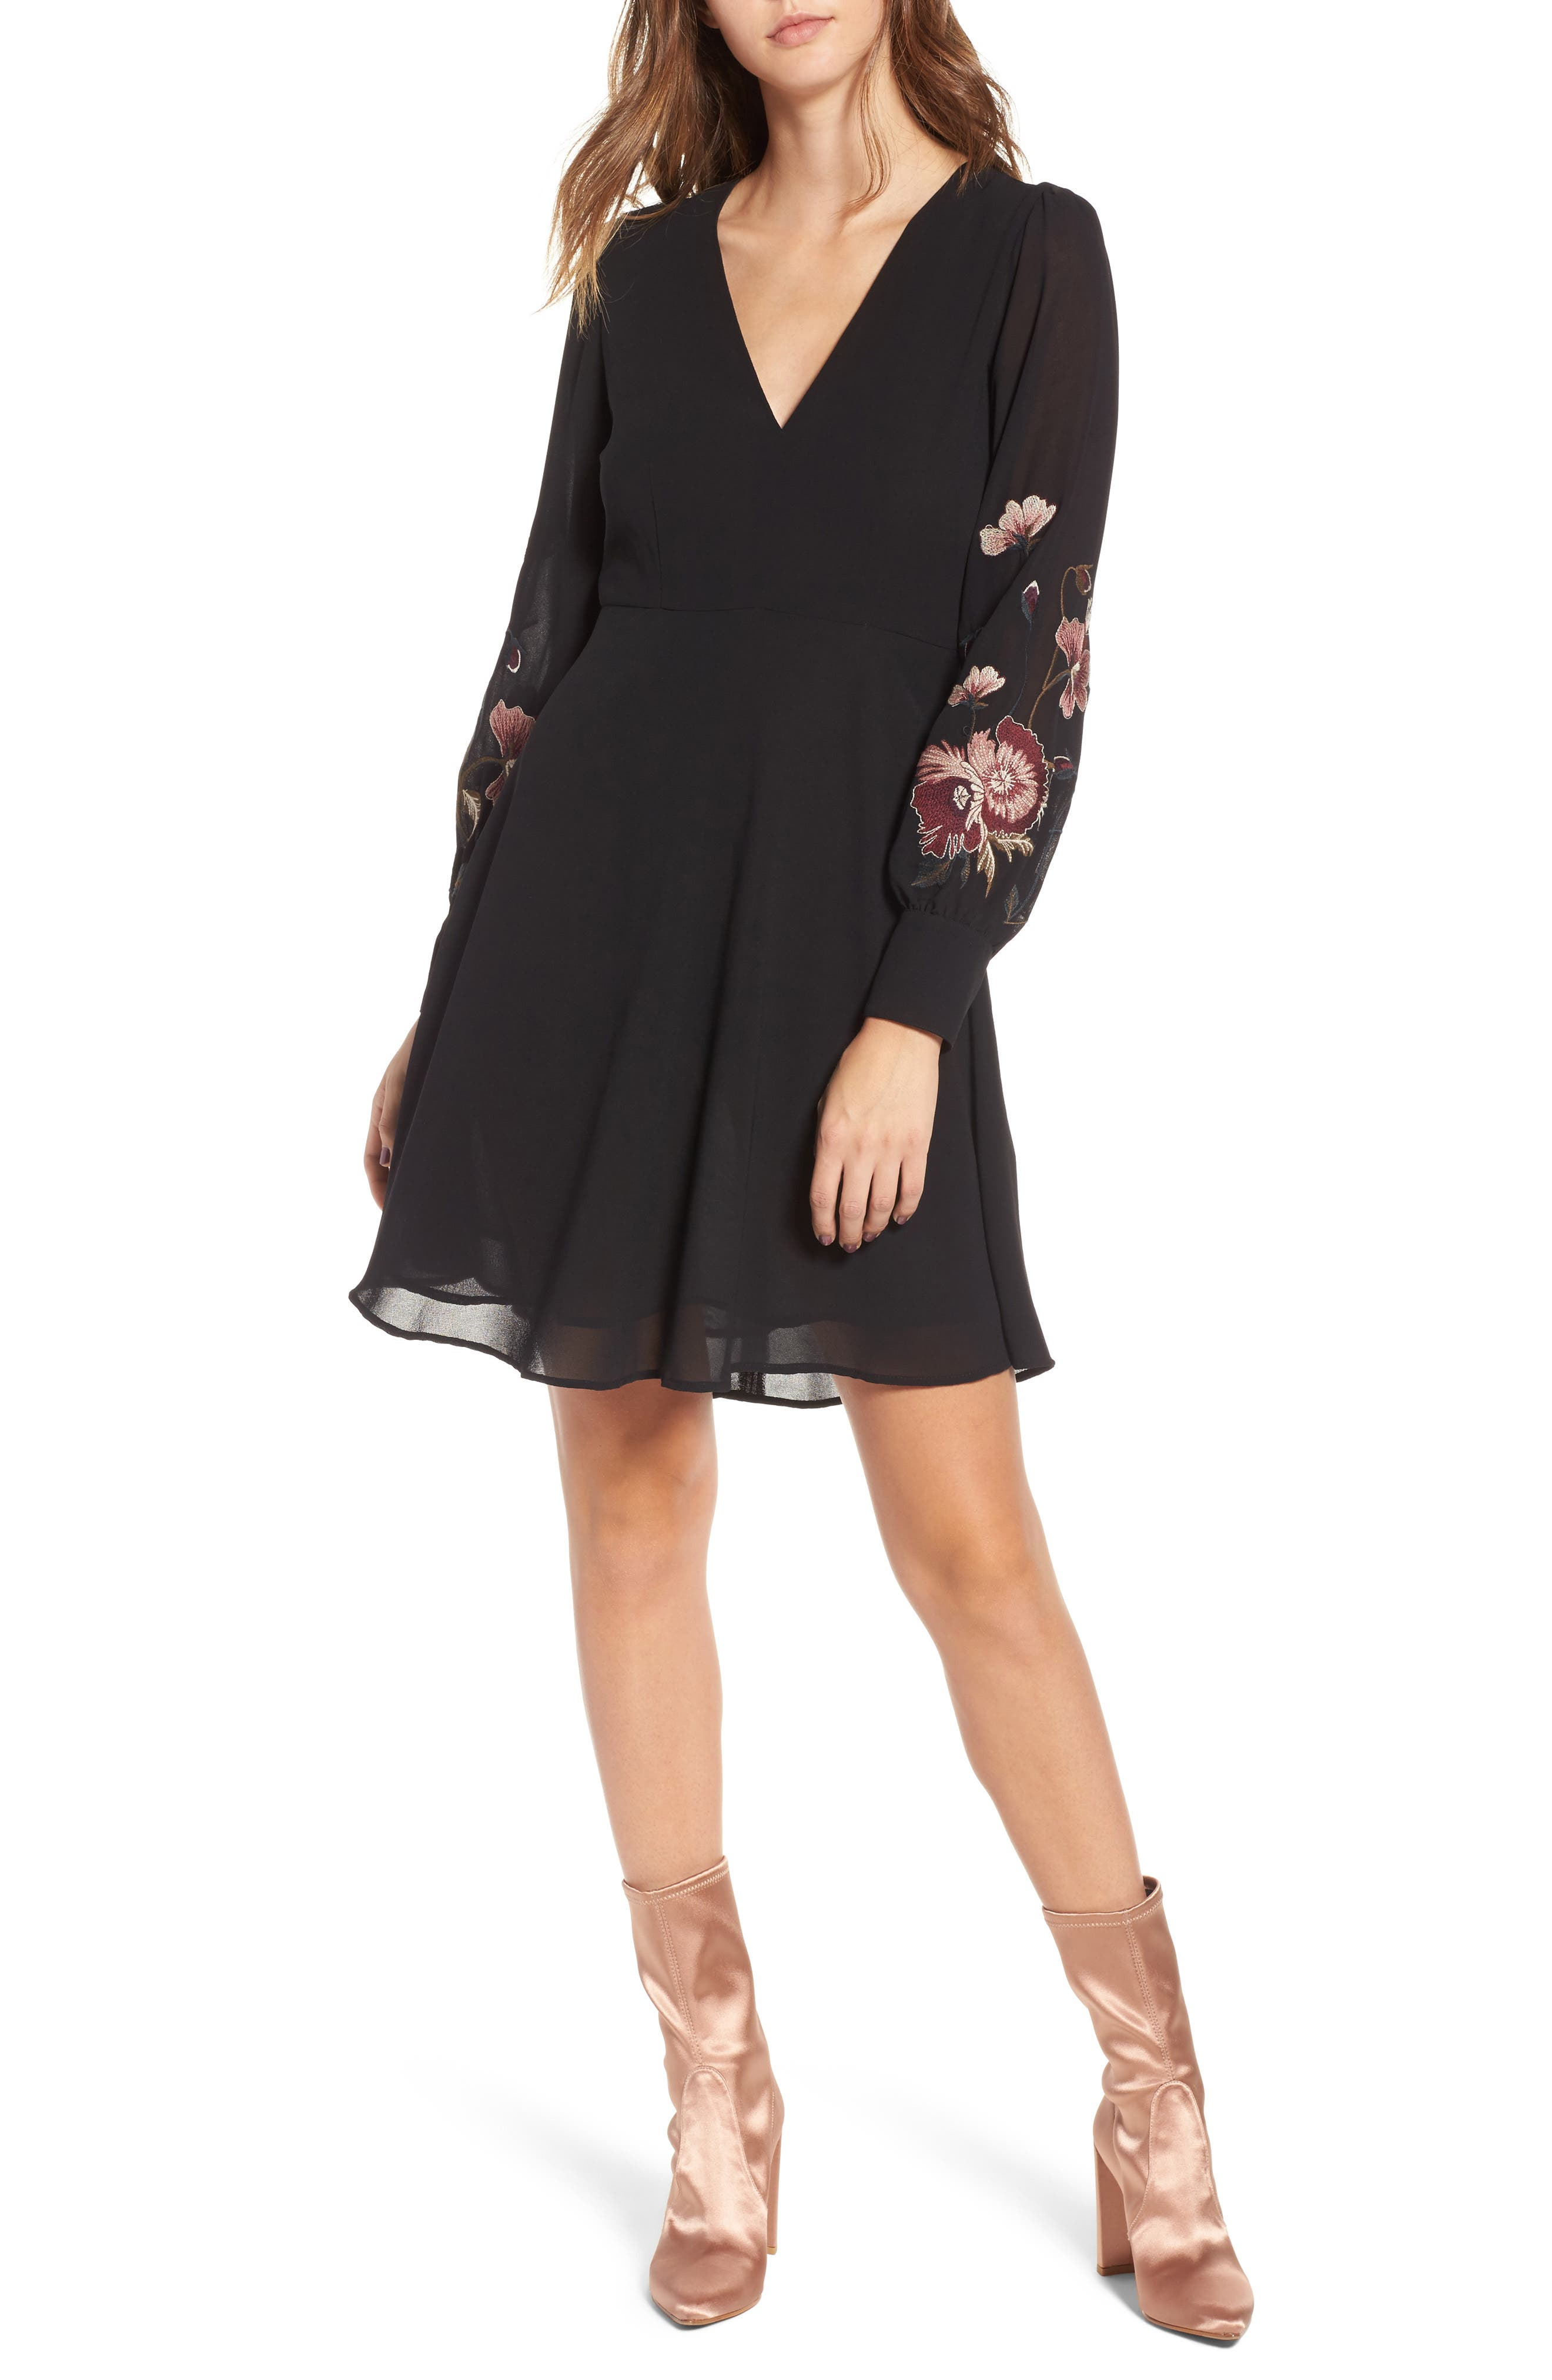 Main Image - ASTR the Label Holly Fit & Flare Dress